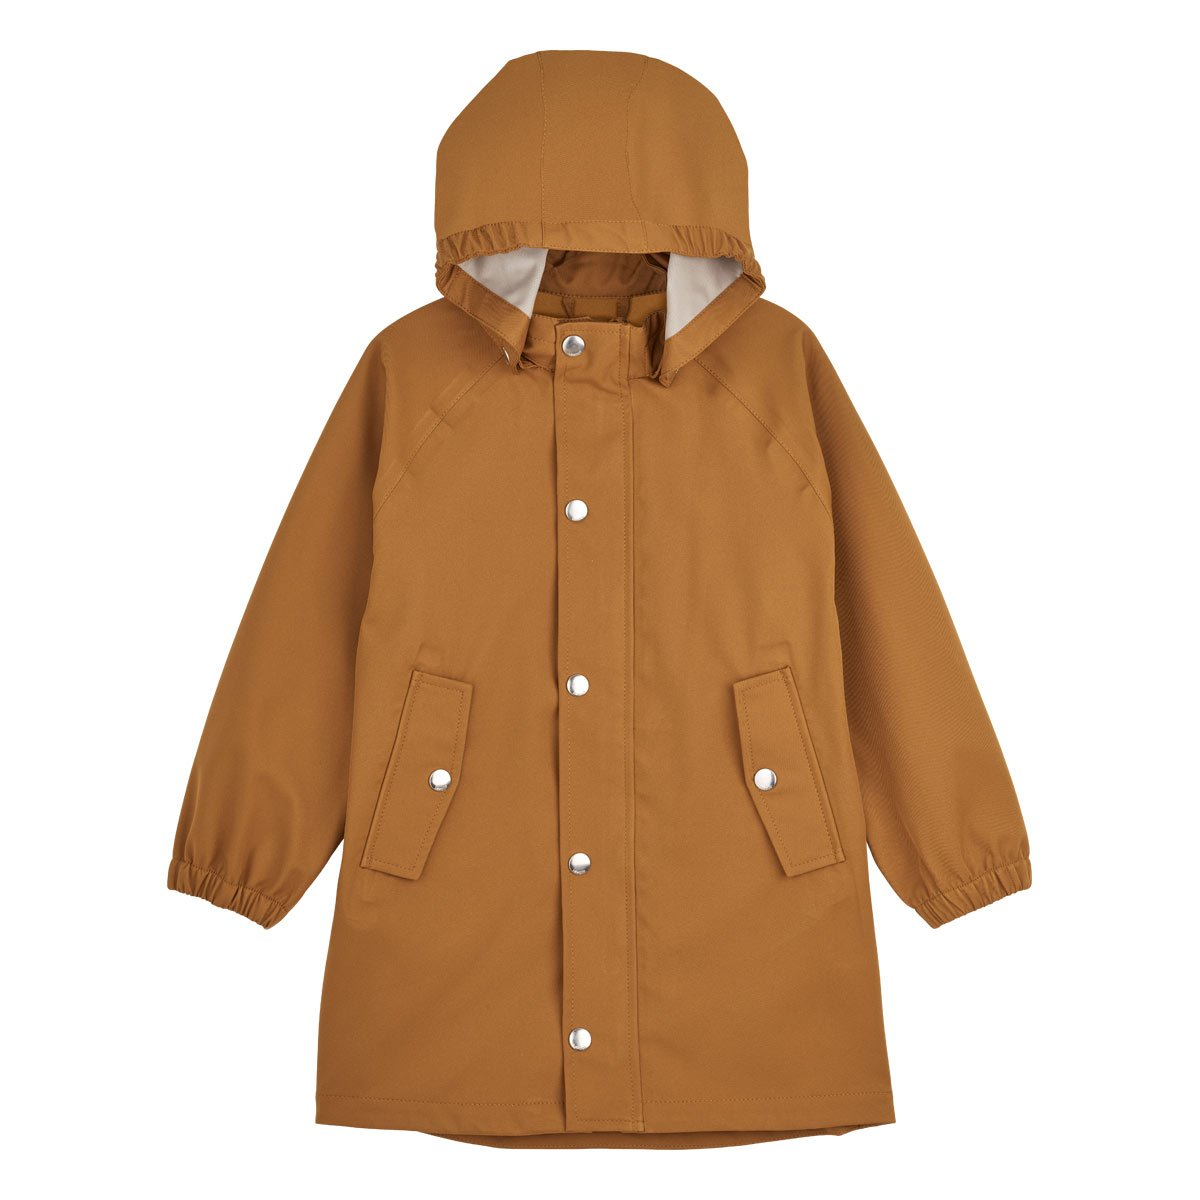 Spencer Long Raincoat - Junior - Mustard